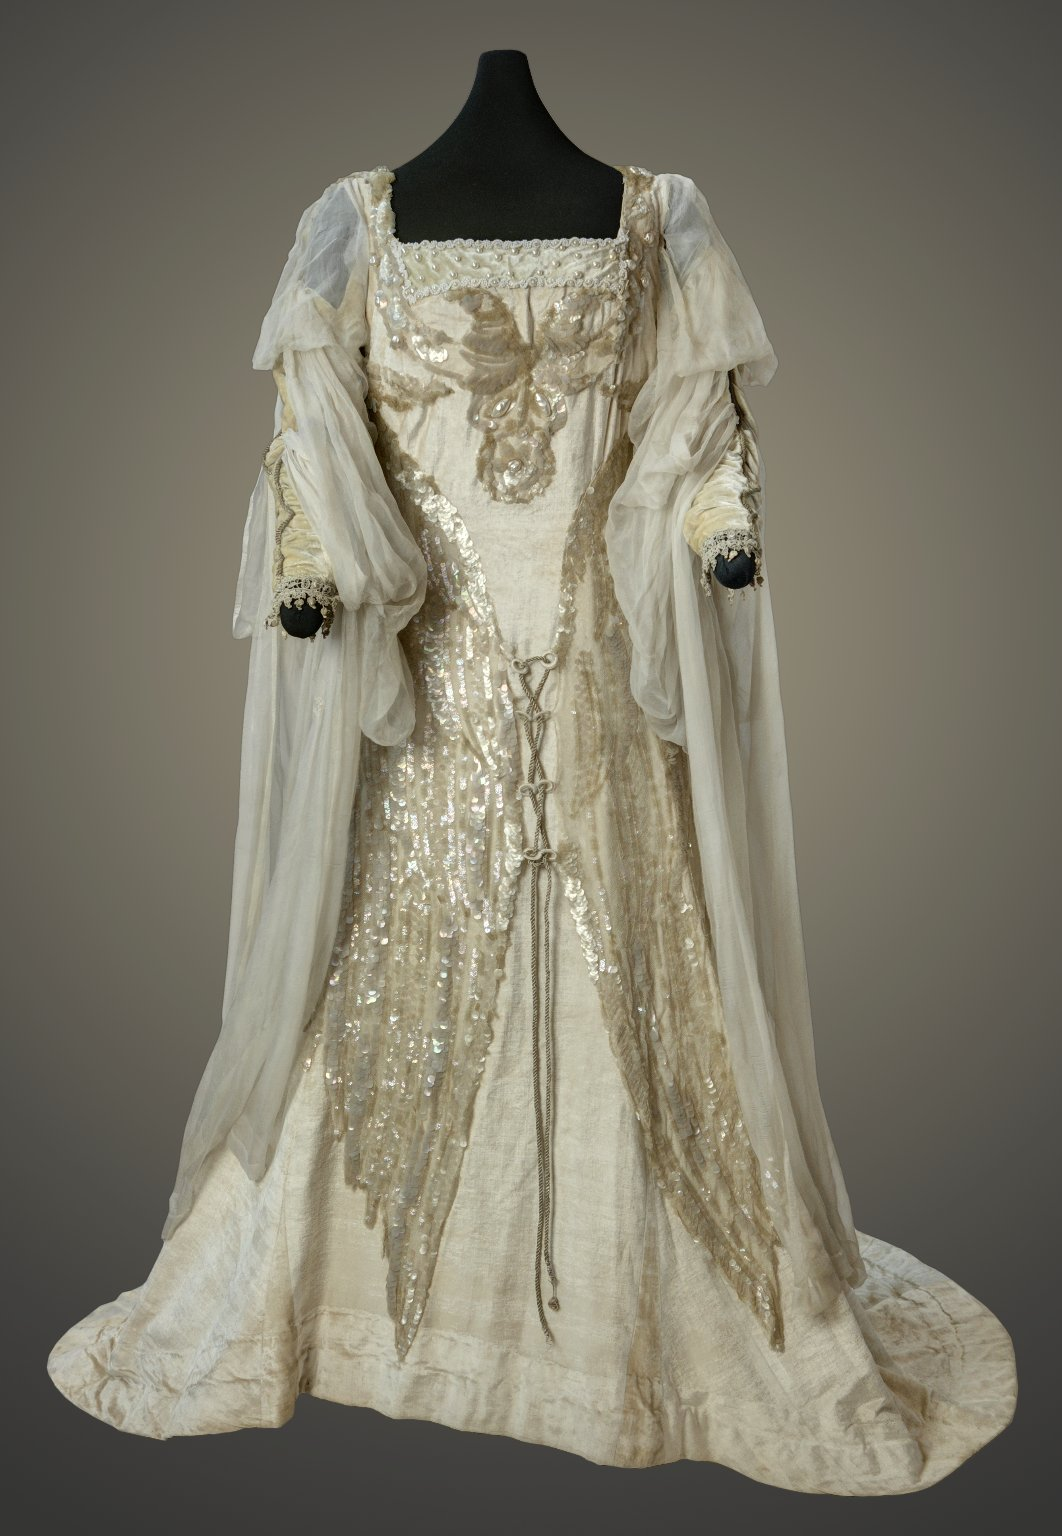 Costume worn by Julia Marlowe in the role of Juliet, White silk velvet and iridescent scale dress